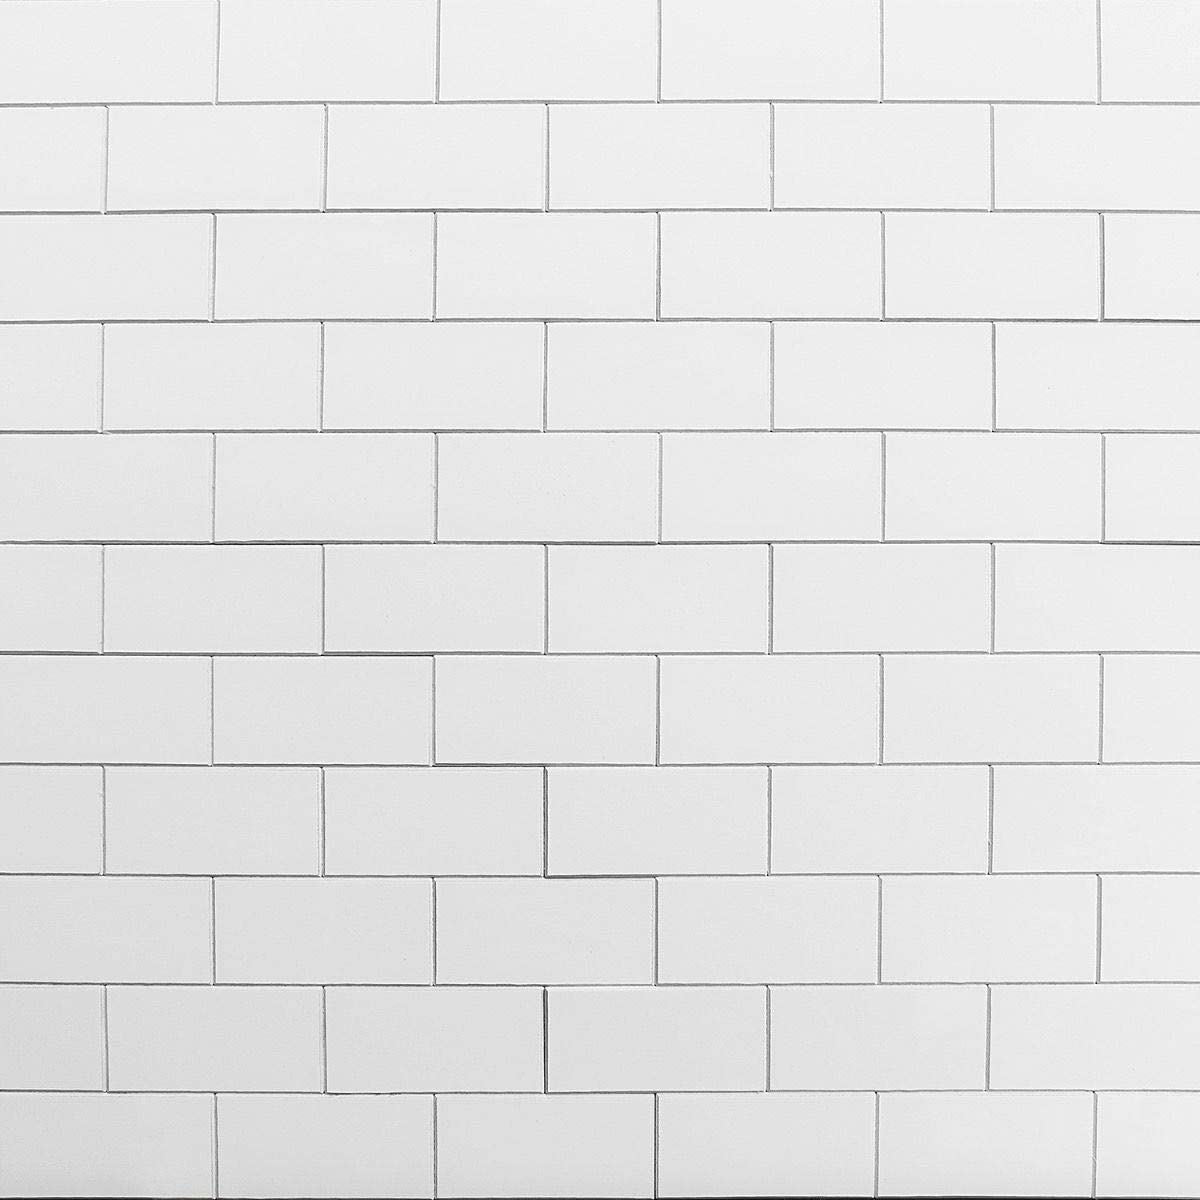 Luxe Core Subway Calacatta 6 in SPC Peel and Stick Tile Sample x 0.18 in